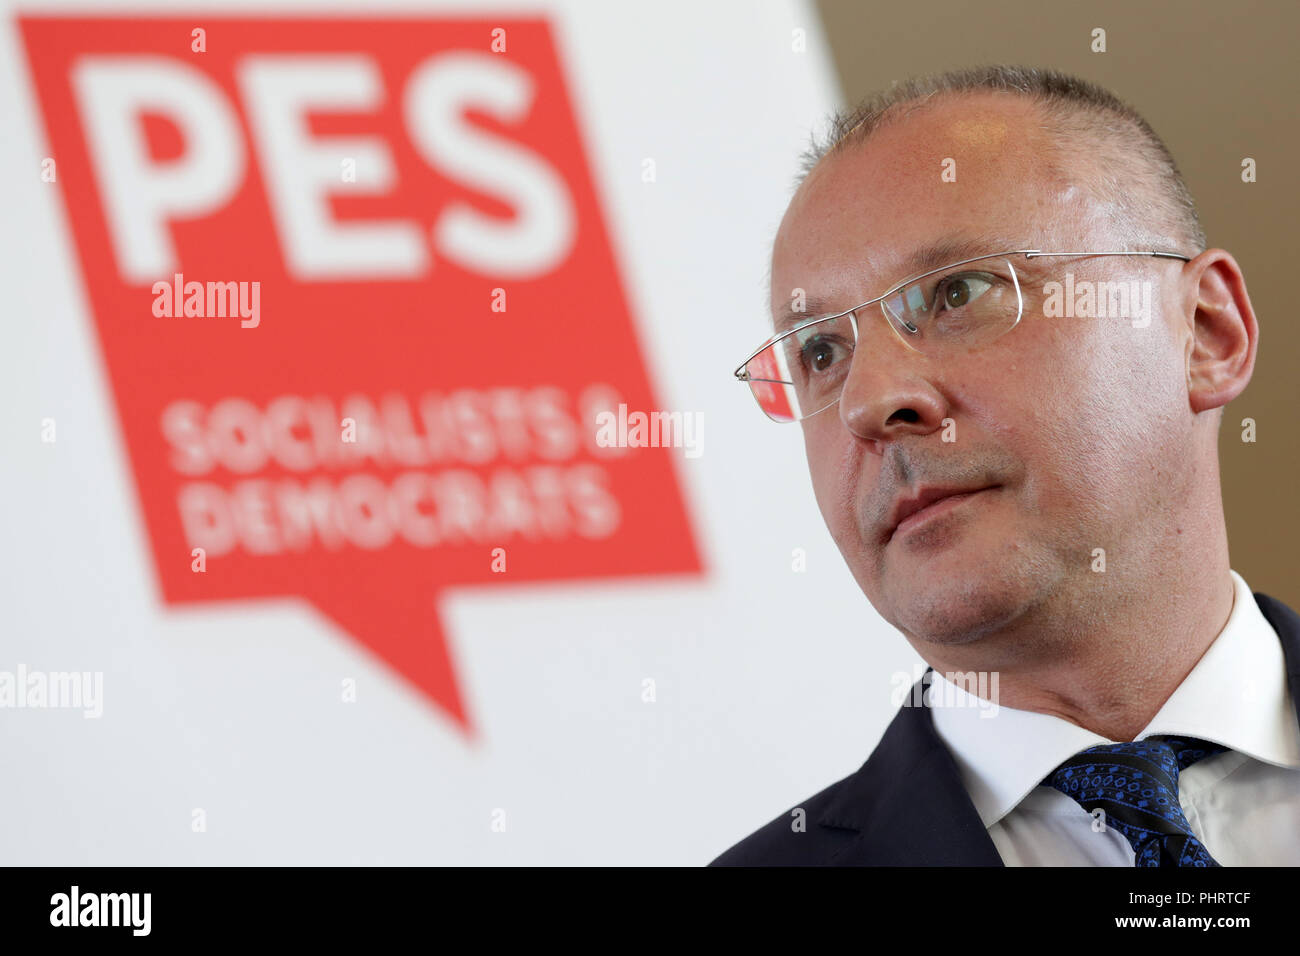 President of the Party of European Socialists (PES) Sergei Stanishev - Stock Image